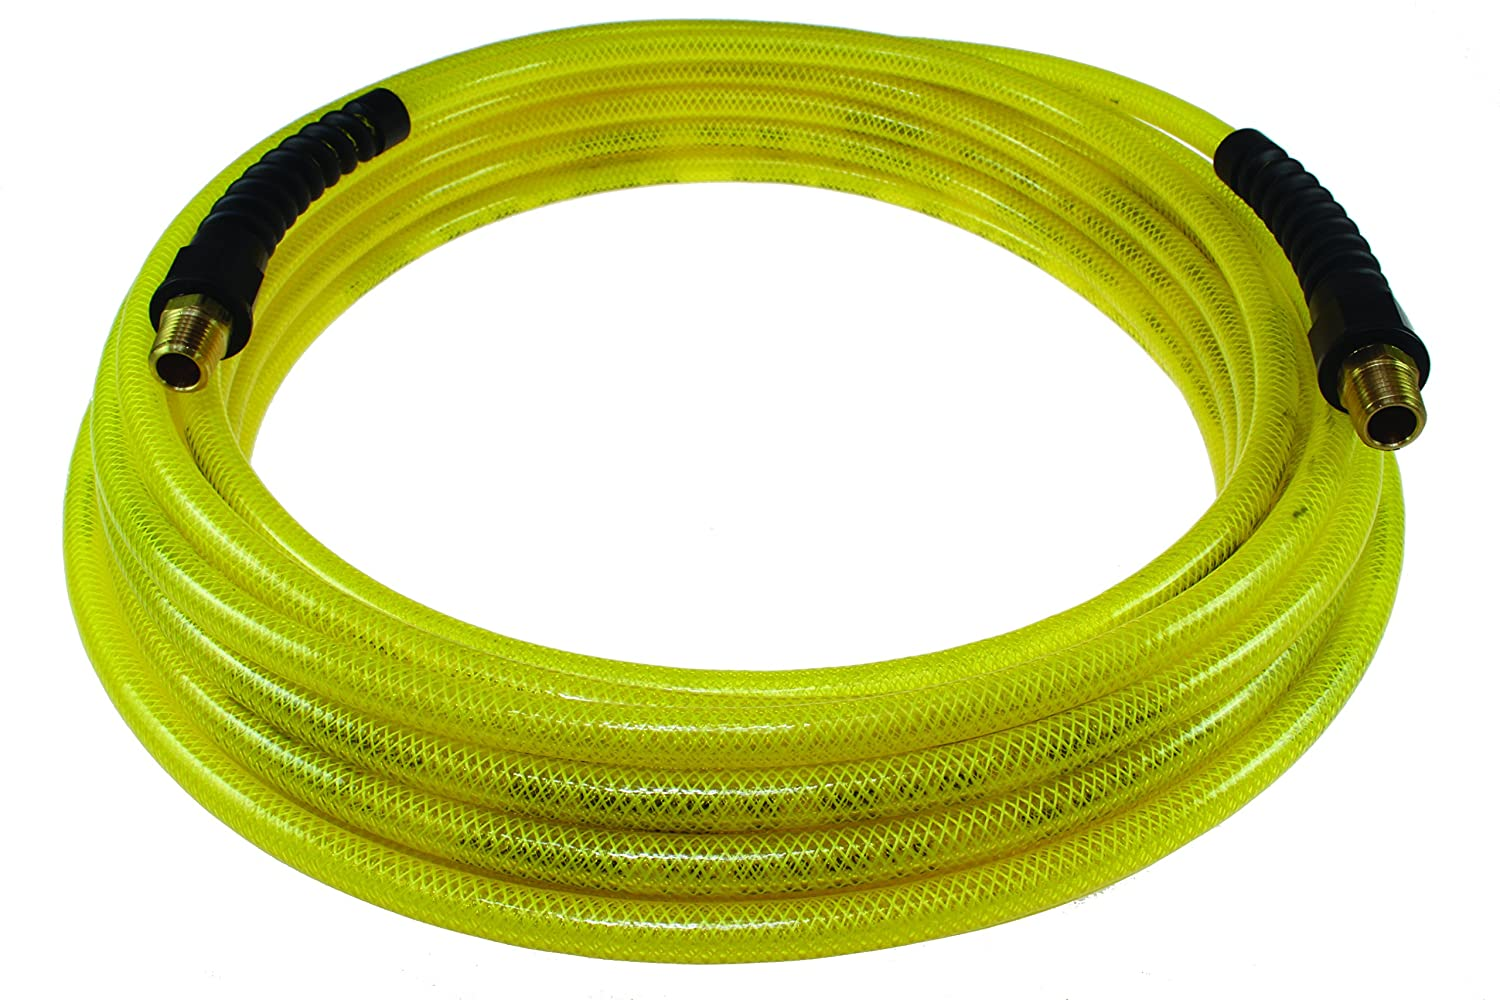 Coilhose Pneumatics PFE60254TY Flexeel Reinforced Polyurethane Air Hose, 3/8' ID, 25' Length with (2) 1/4' MPT Reusable Strain Relief Fittings, Transparent Yellow 3/8 ID 25' Length with (2) 1/4 MPT Reusable Strain Relief Fittings